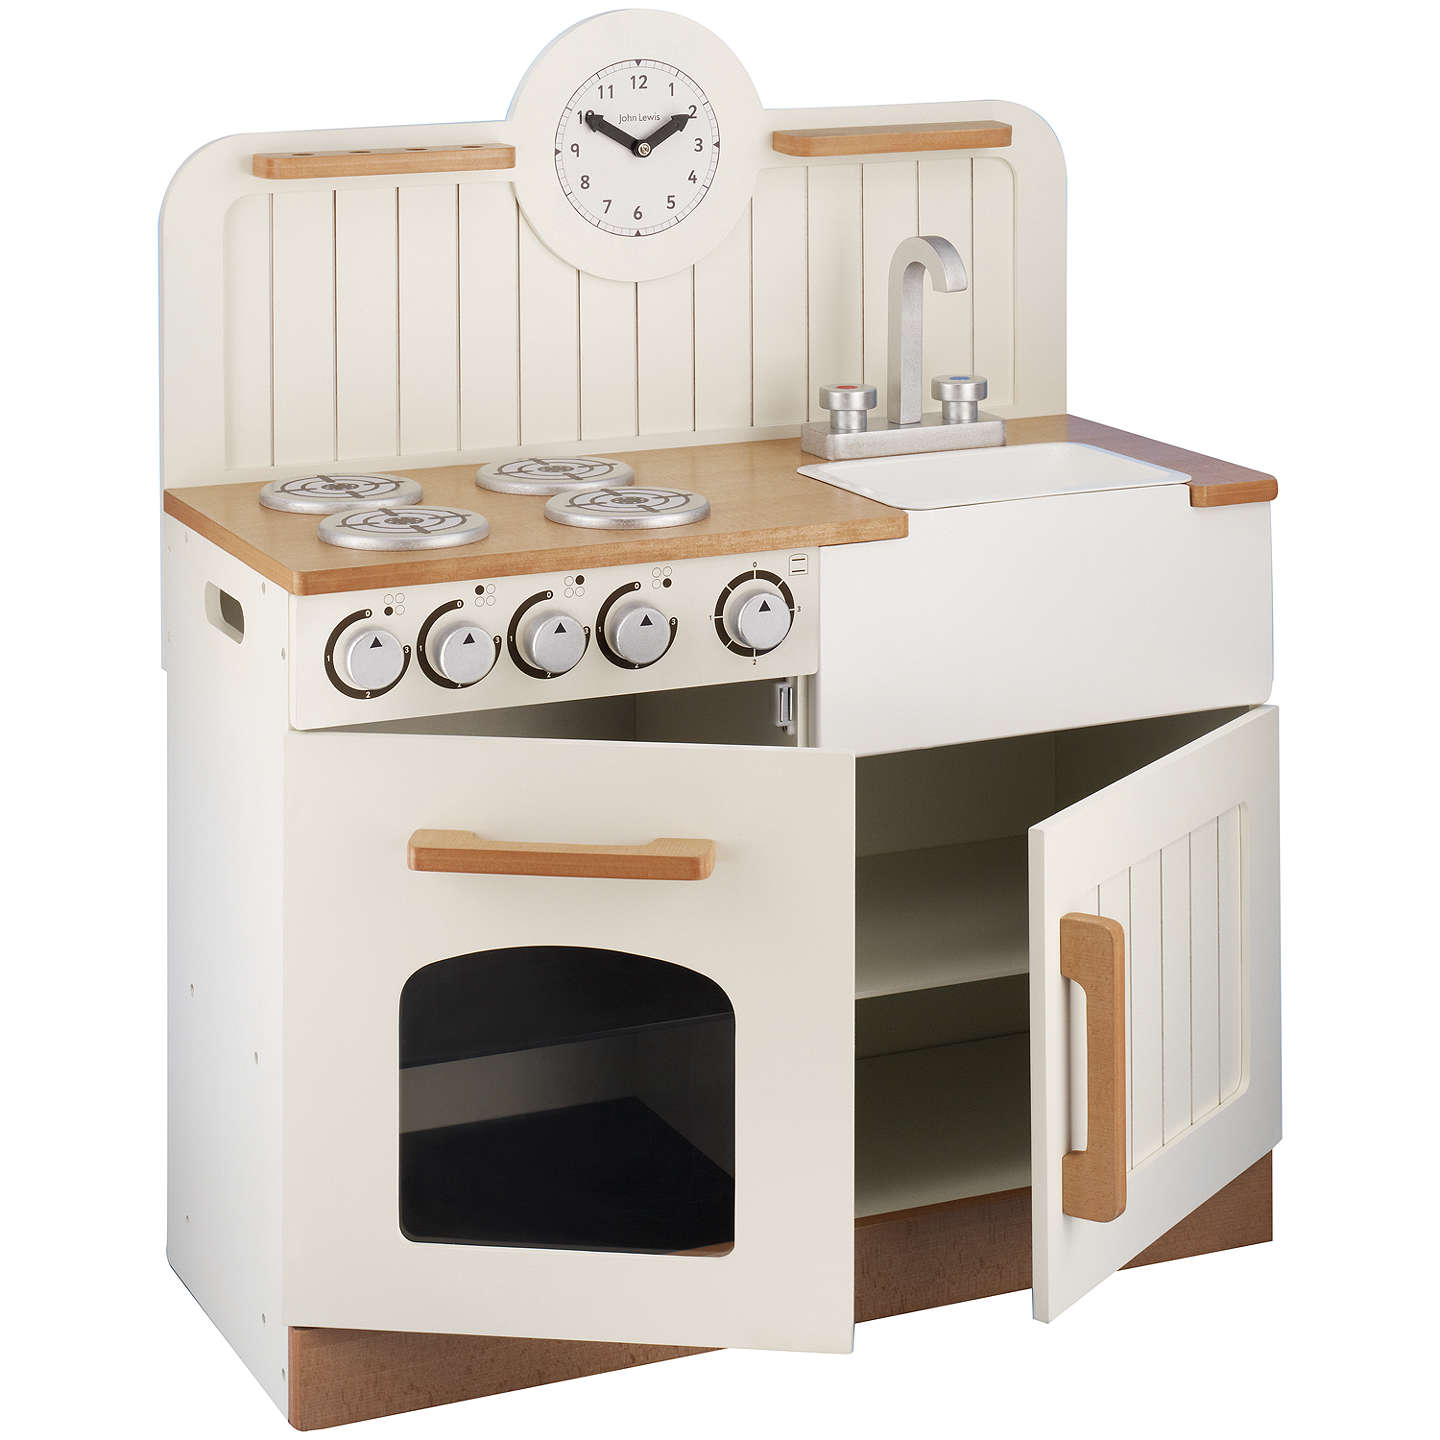 kitchen sets pin for and wooden best picks kids reviews top play